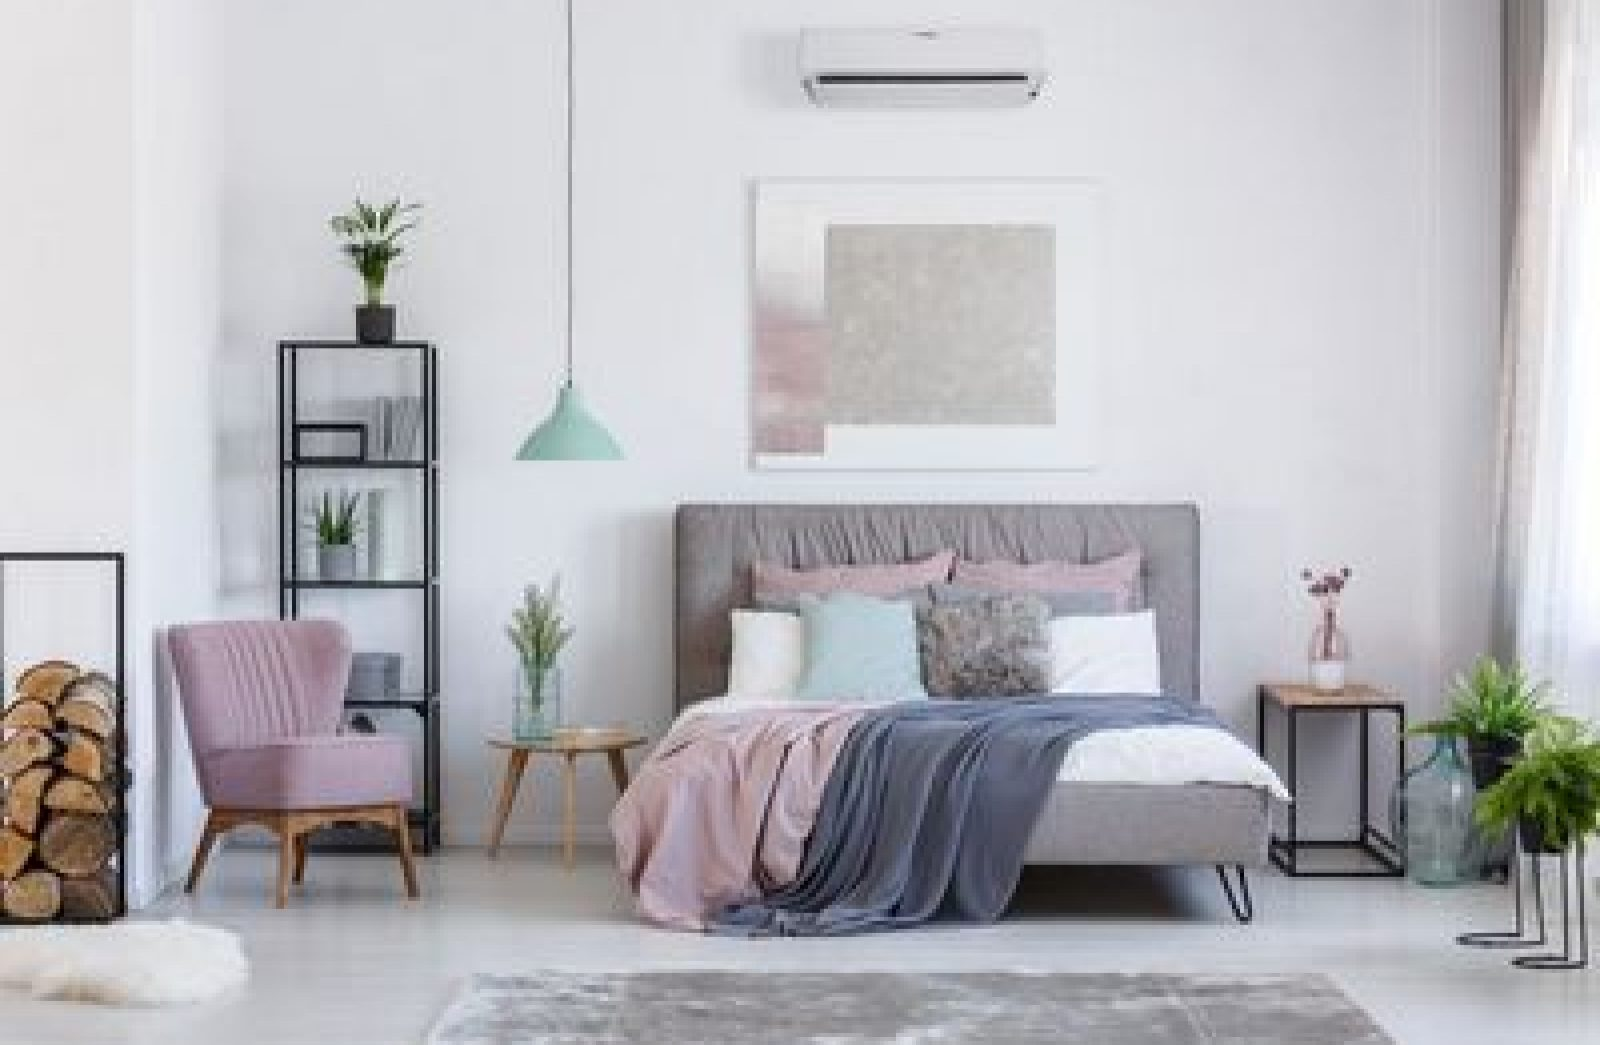 Comfortable powder pink chair next to shelf with firewood in soft pastel bedroom with decorative glass vases; Shutterstock ID 726726967; Client/Licensee: -